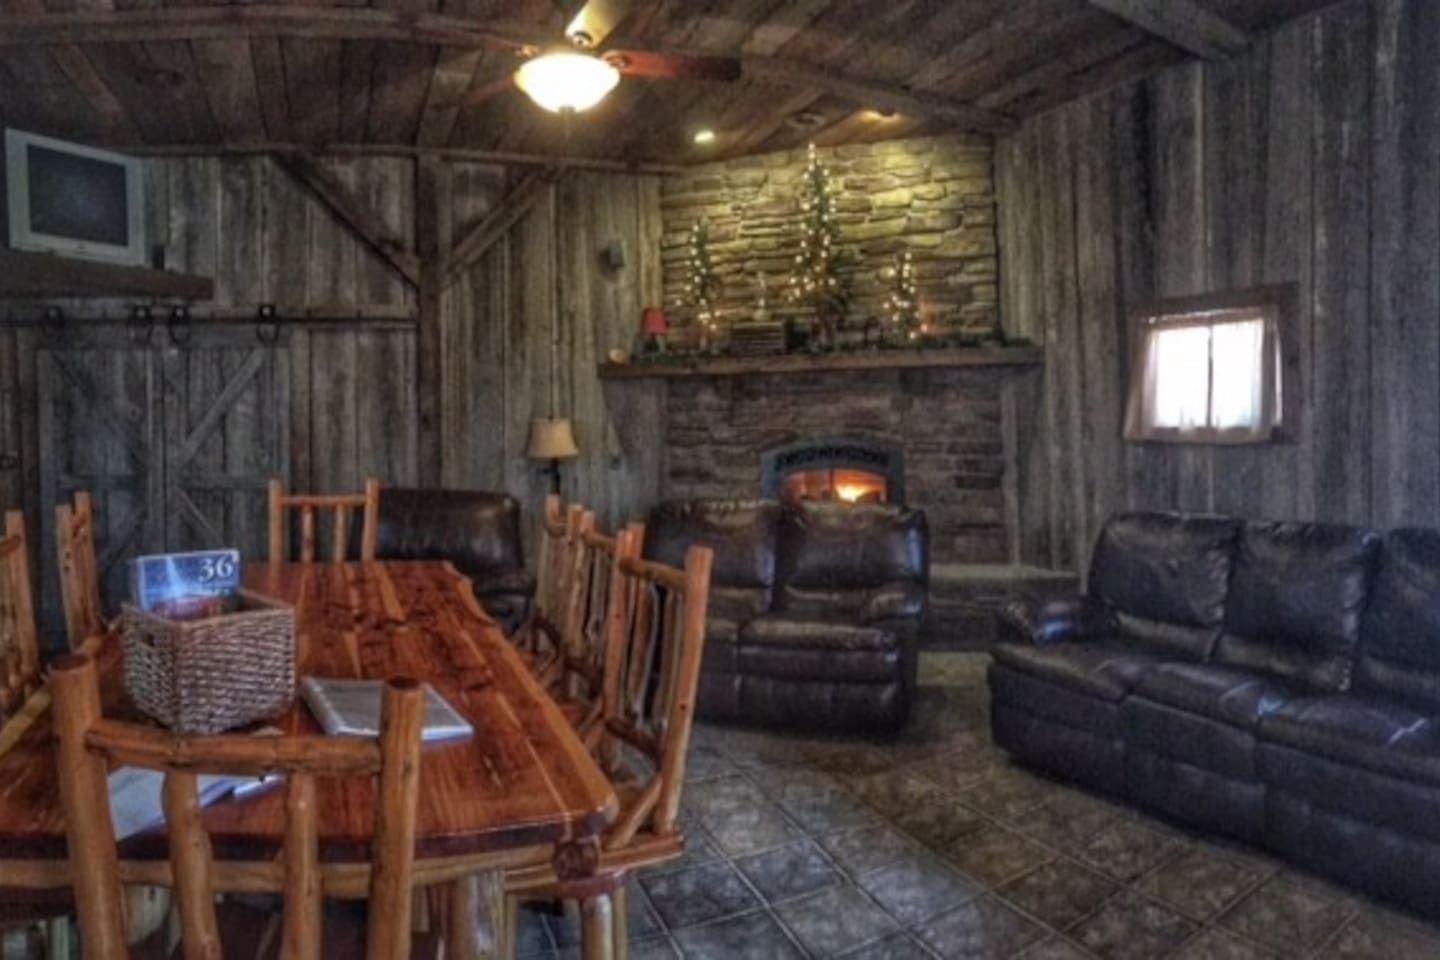 the living room includes leather couches, tables and chairs and a fireplace